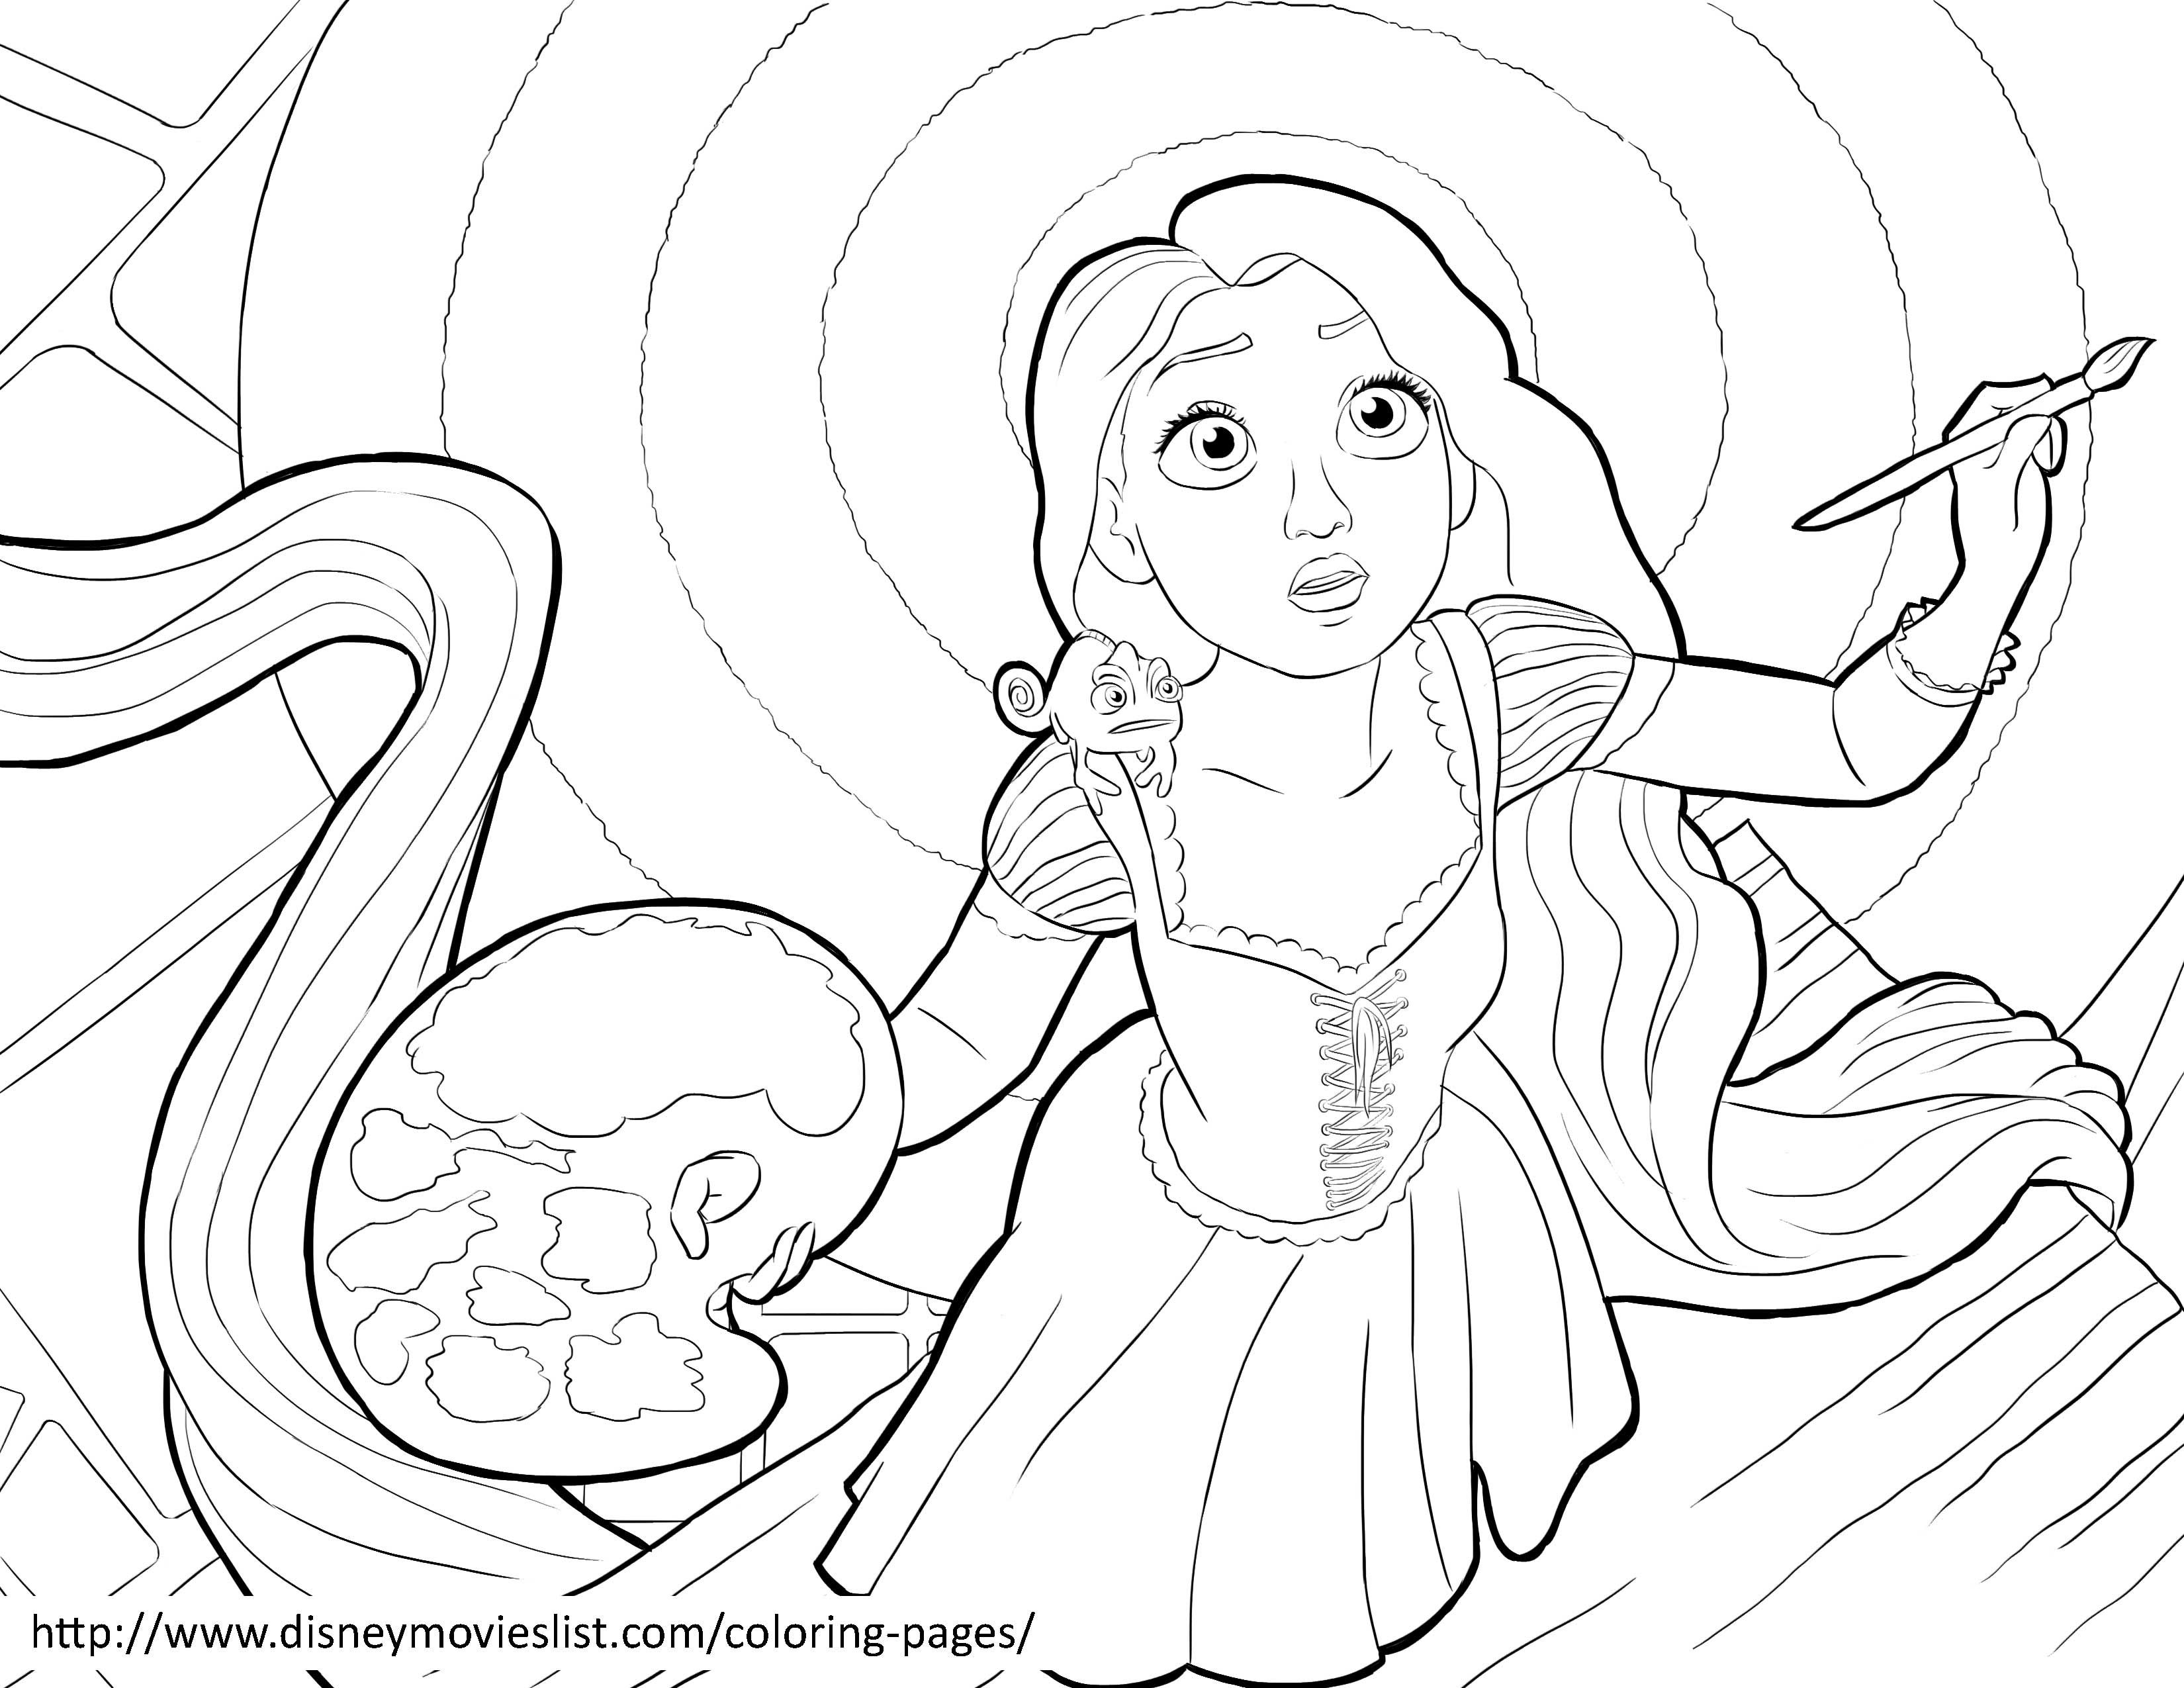 3300x2550 Disney's Tangled Coloring Pages Sheet, Free Disney Printable